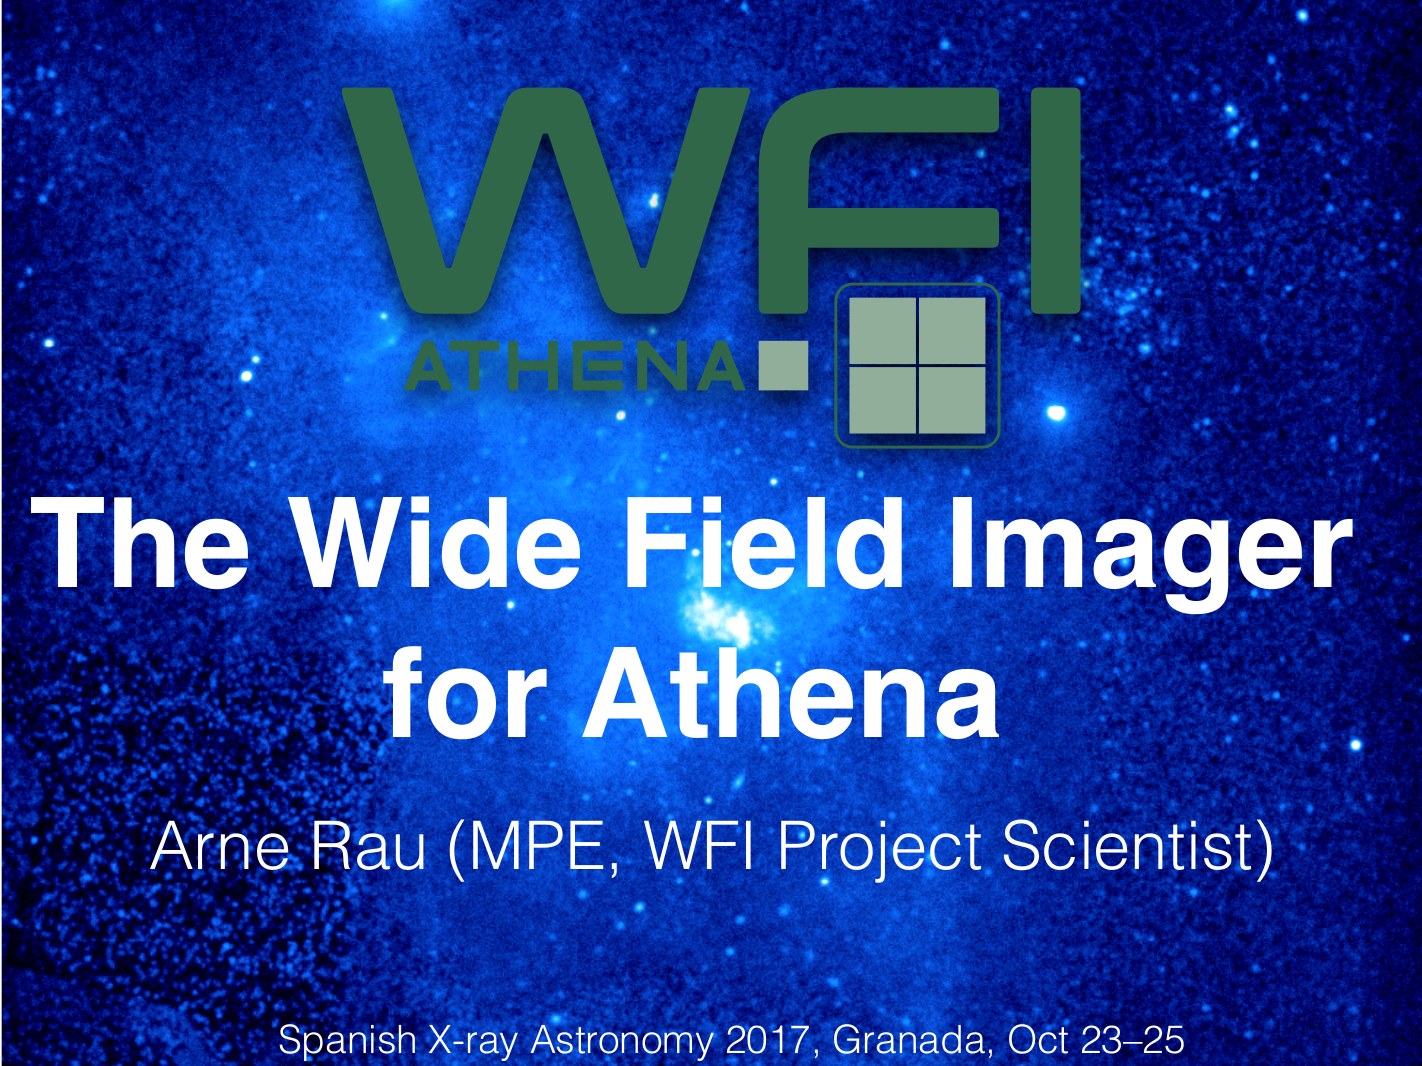 The Wide Field Imager for Athena